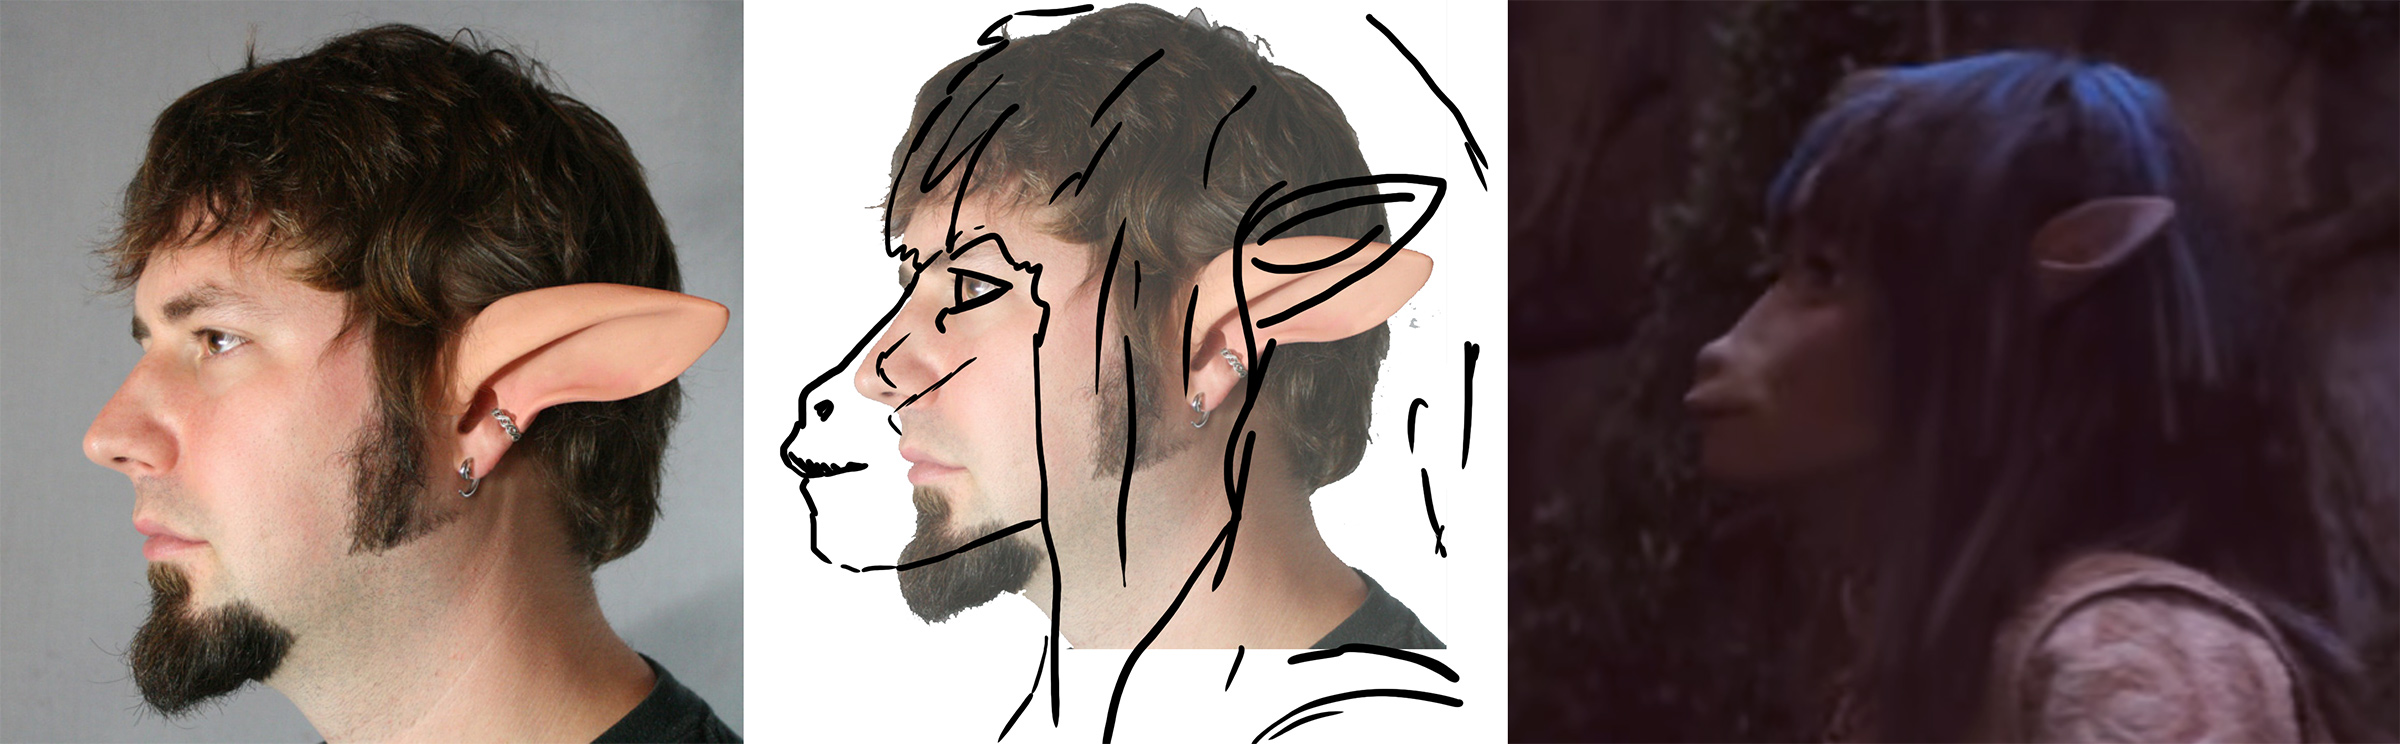 gelfling ears vs faun ears - placement